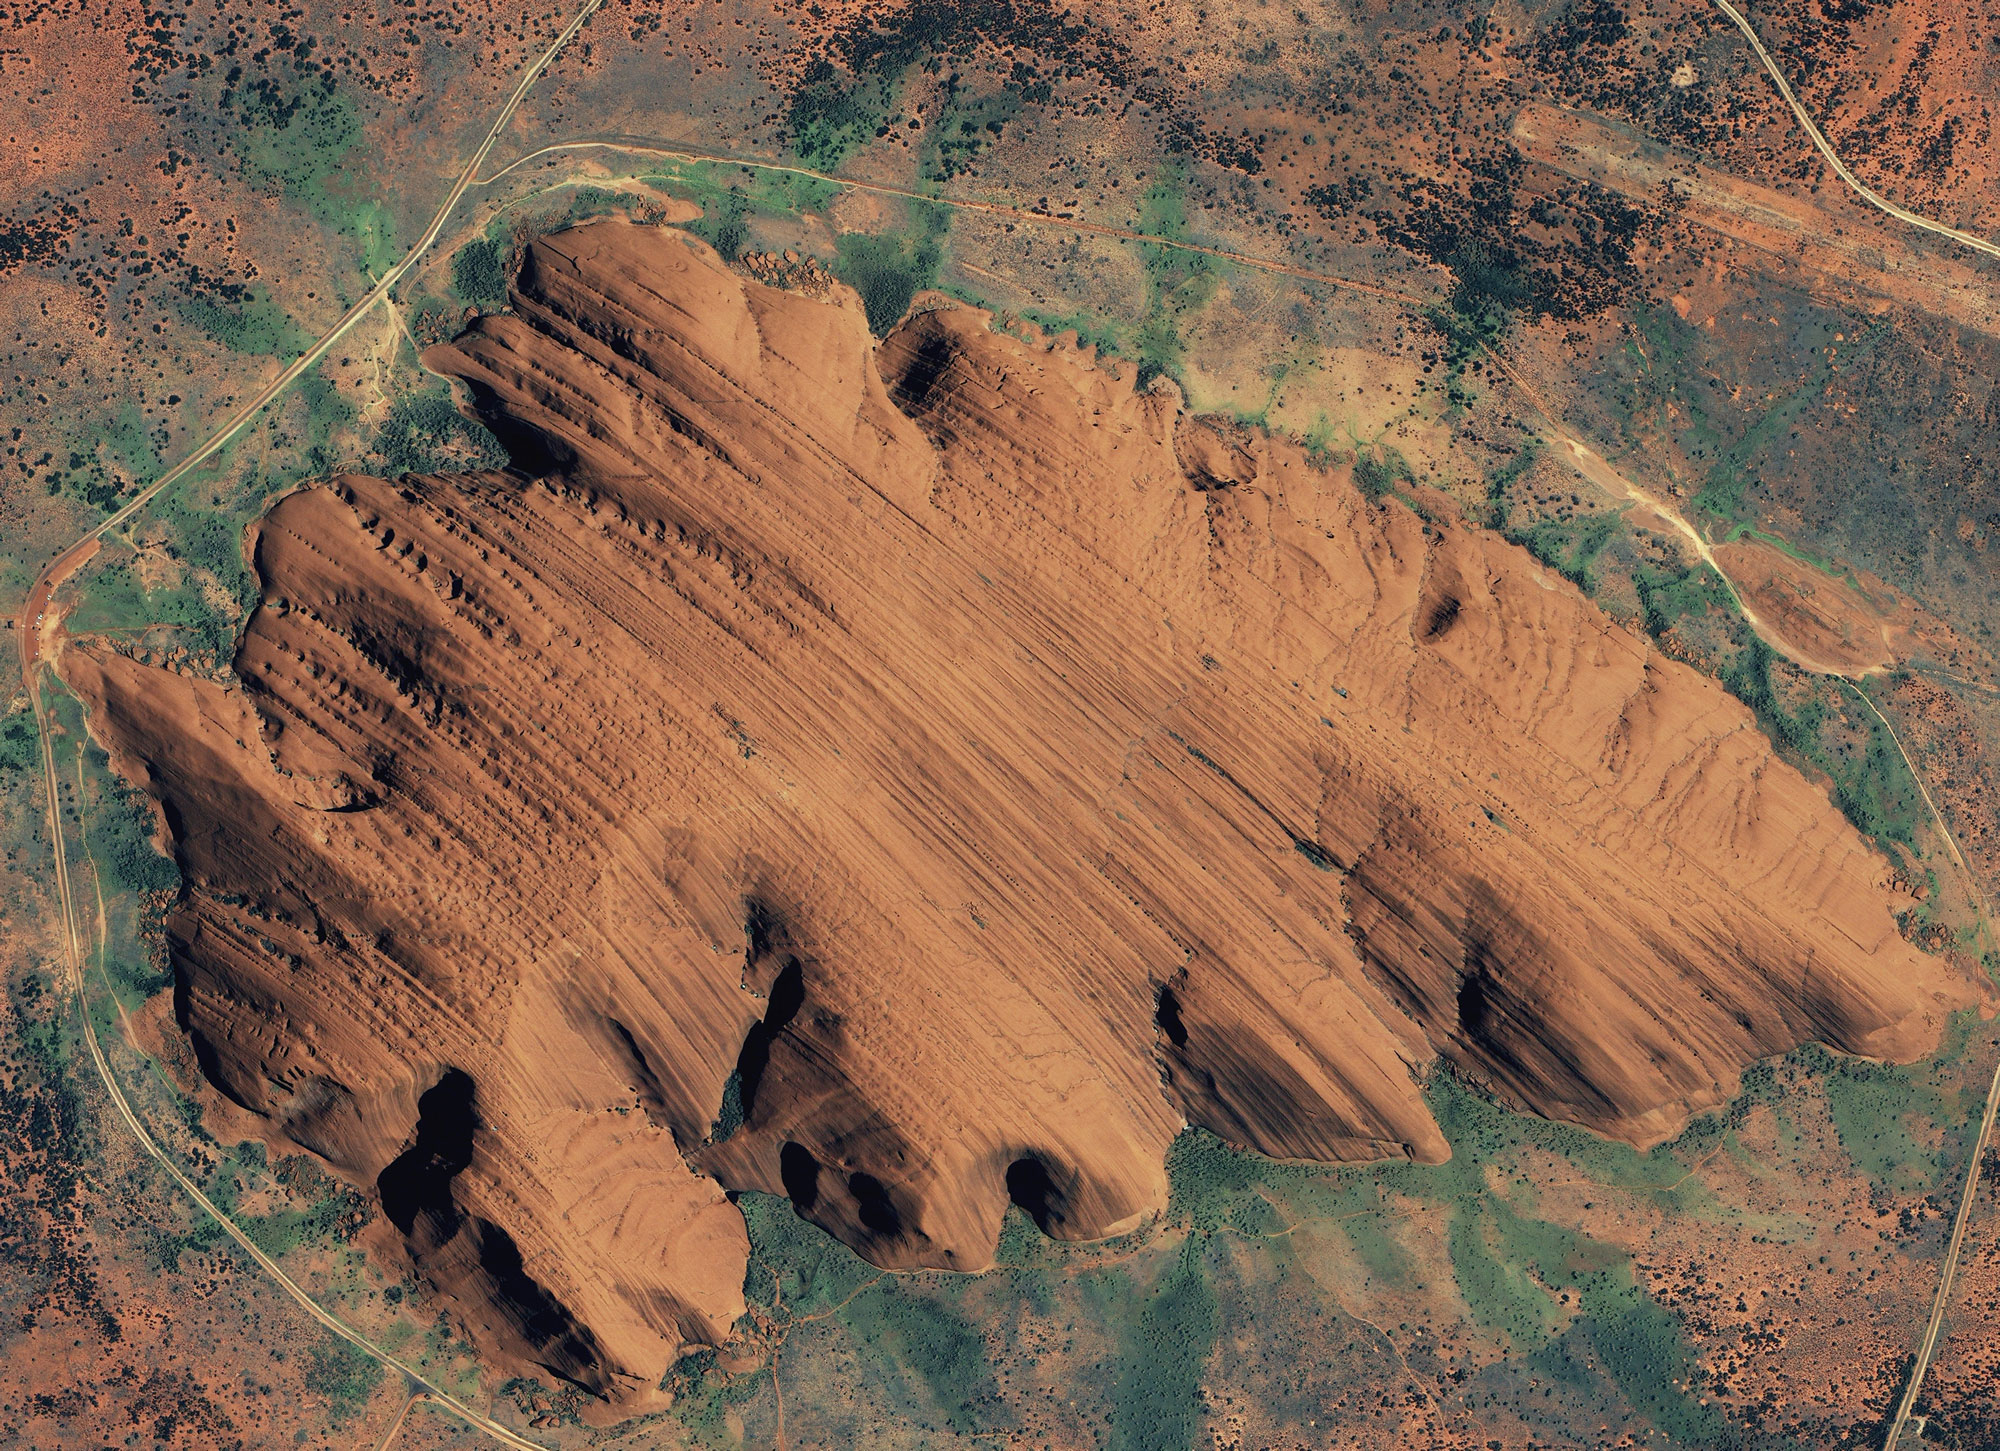 Ayers Rock Uluru from space